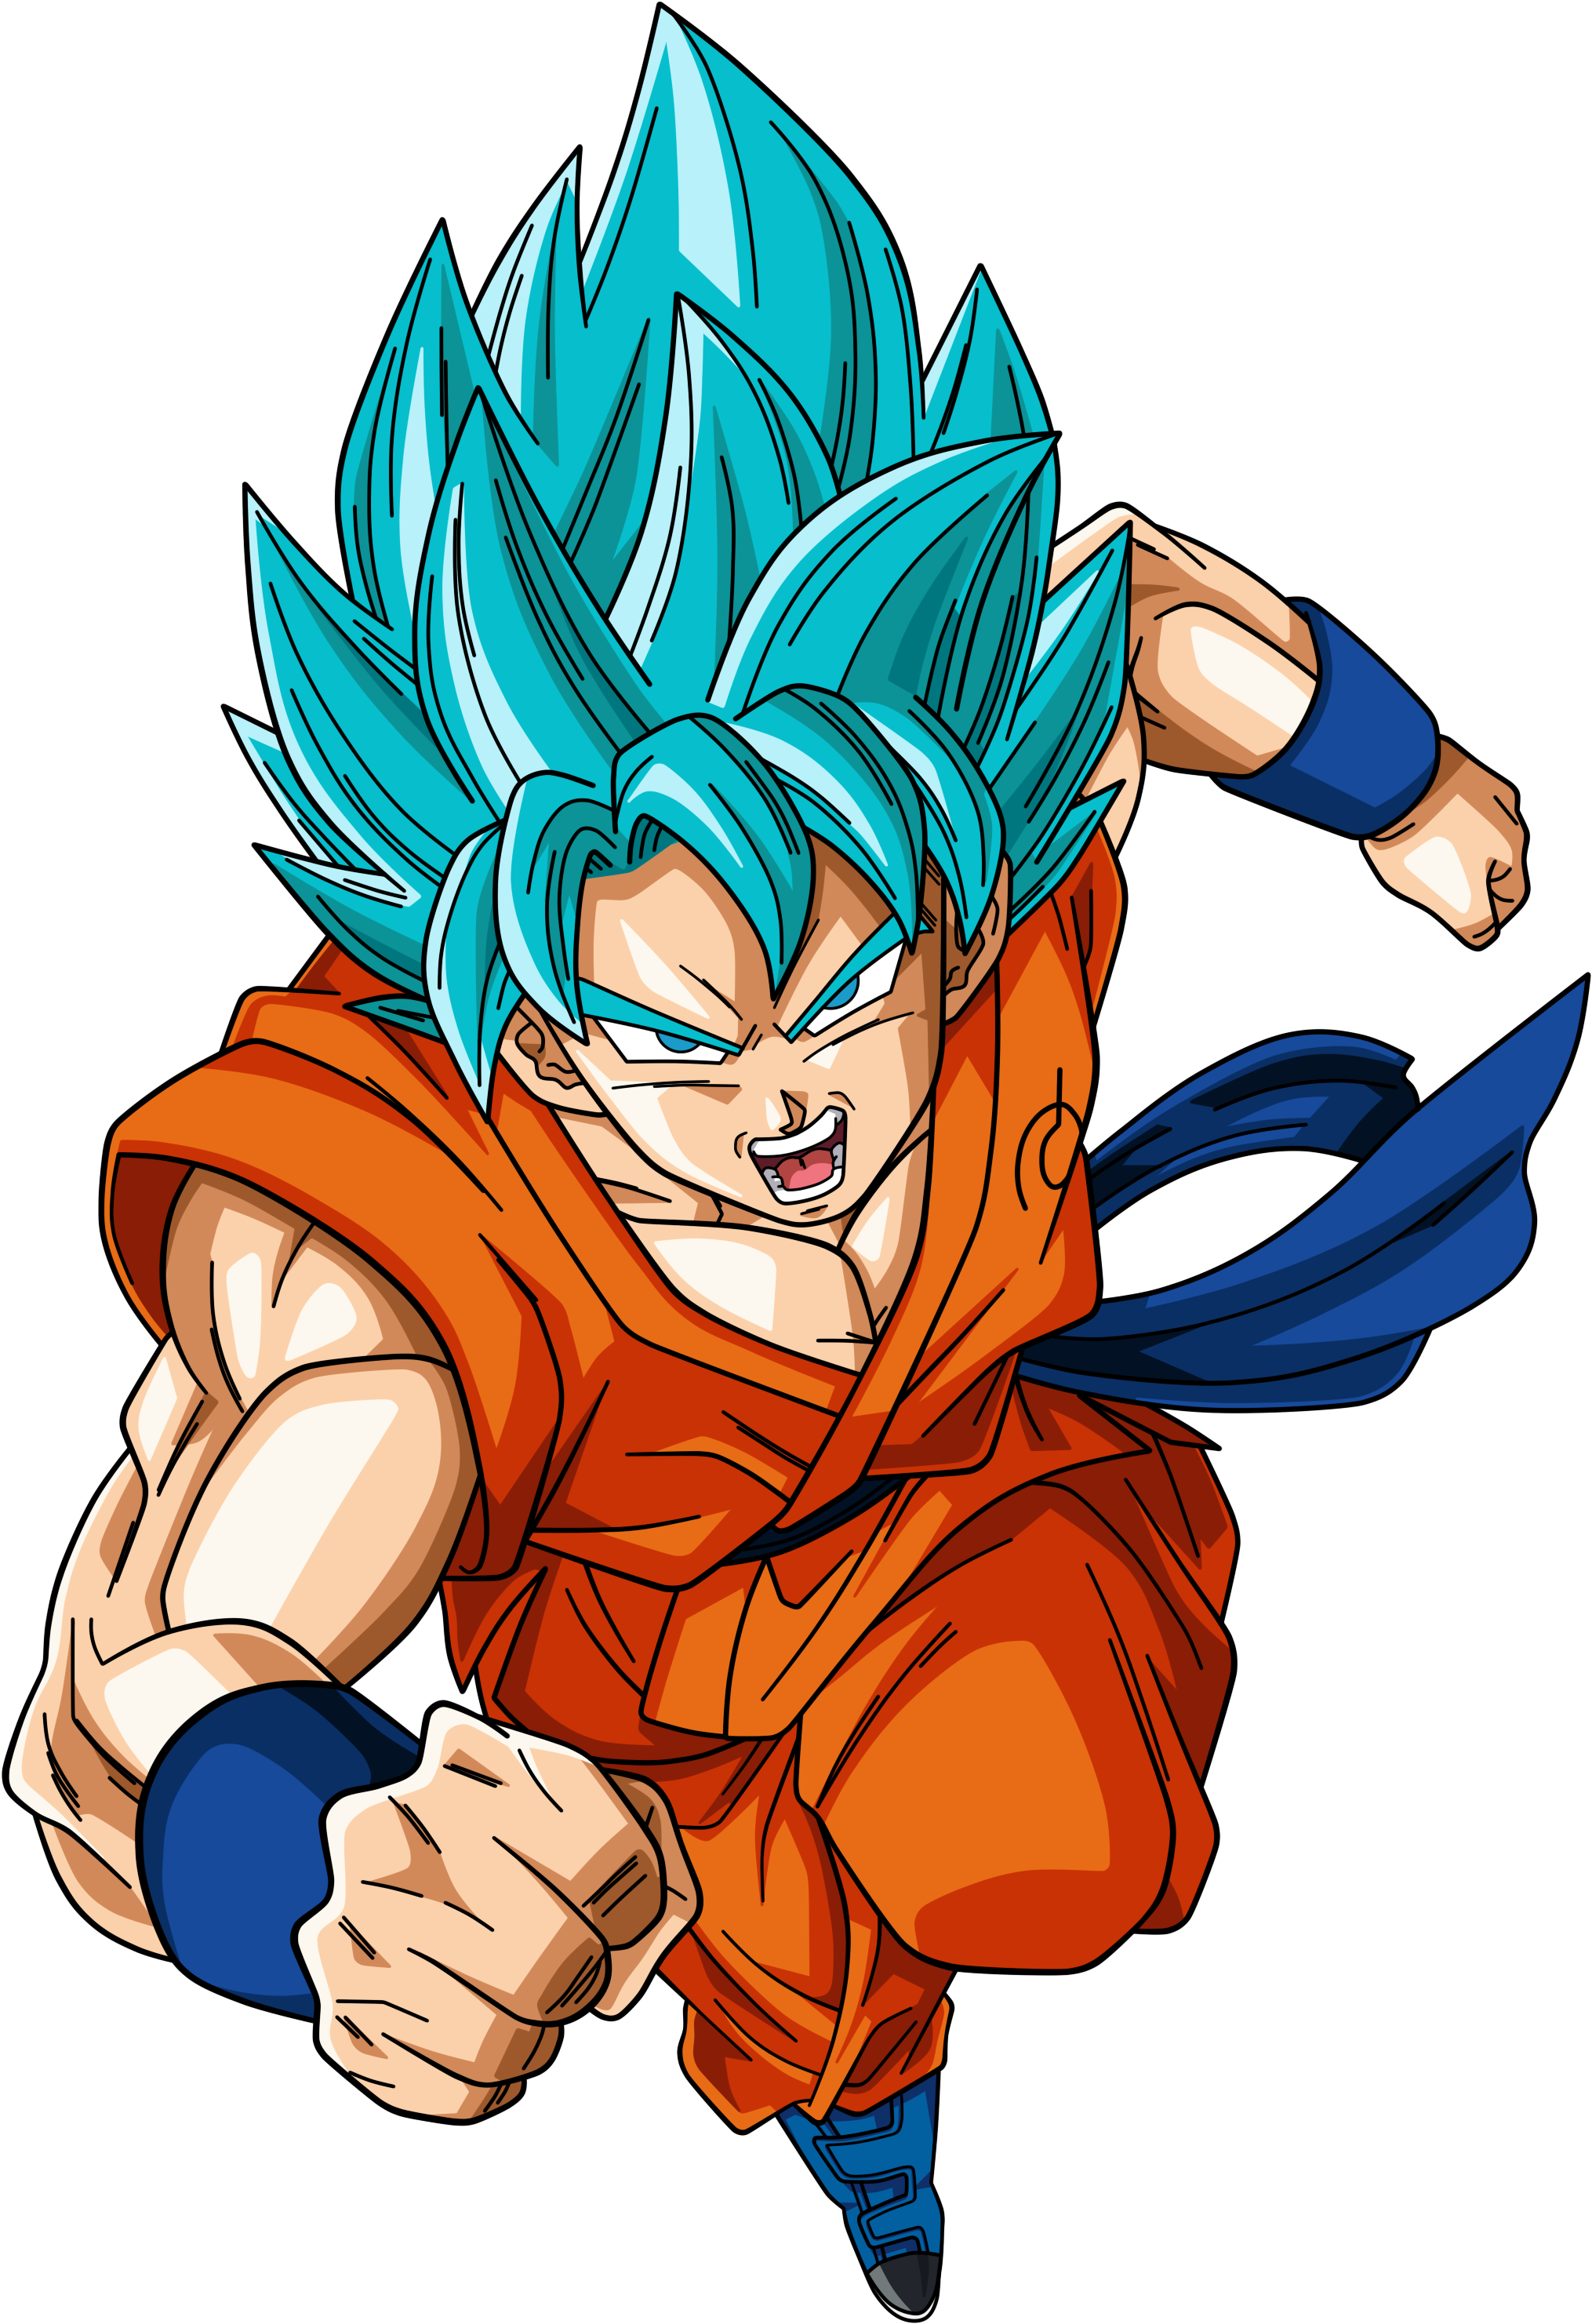 Son Goku Super Saiyan God Super Saiyan By Dark Crawler D8zkljz Png